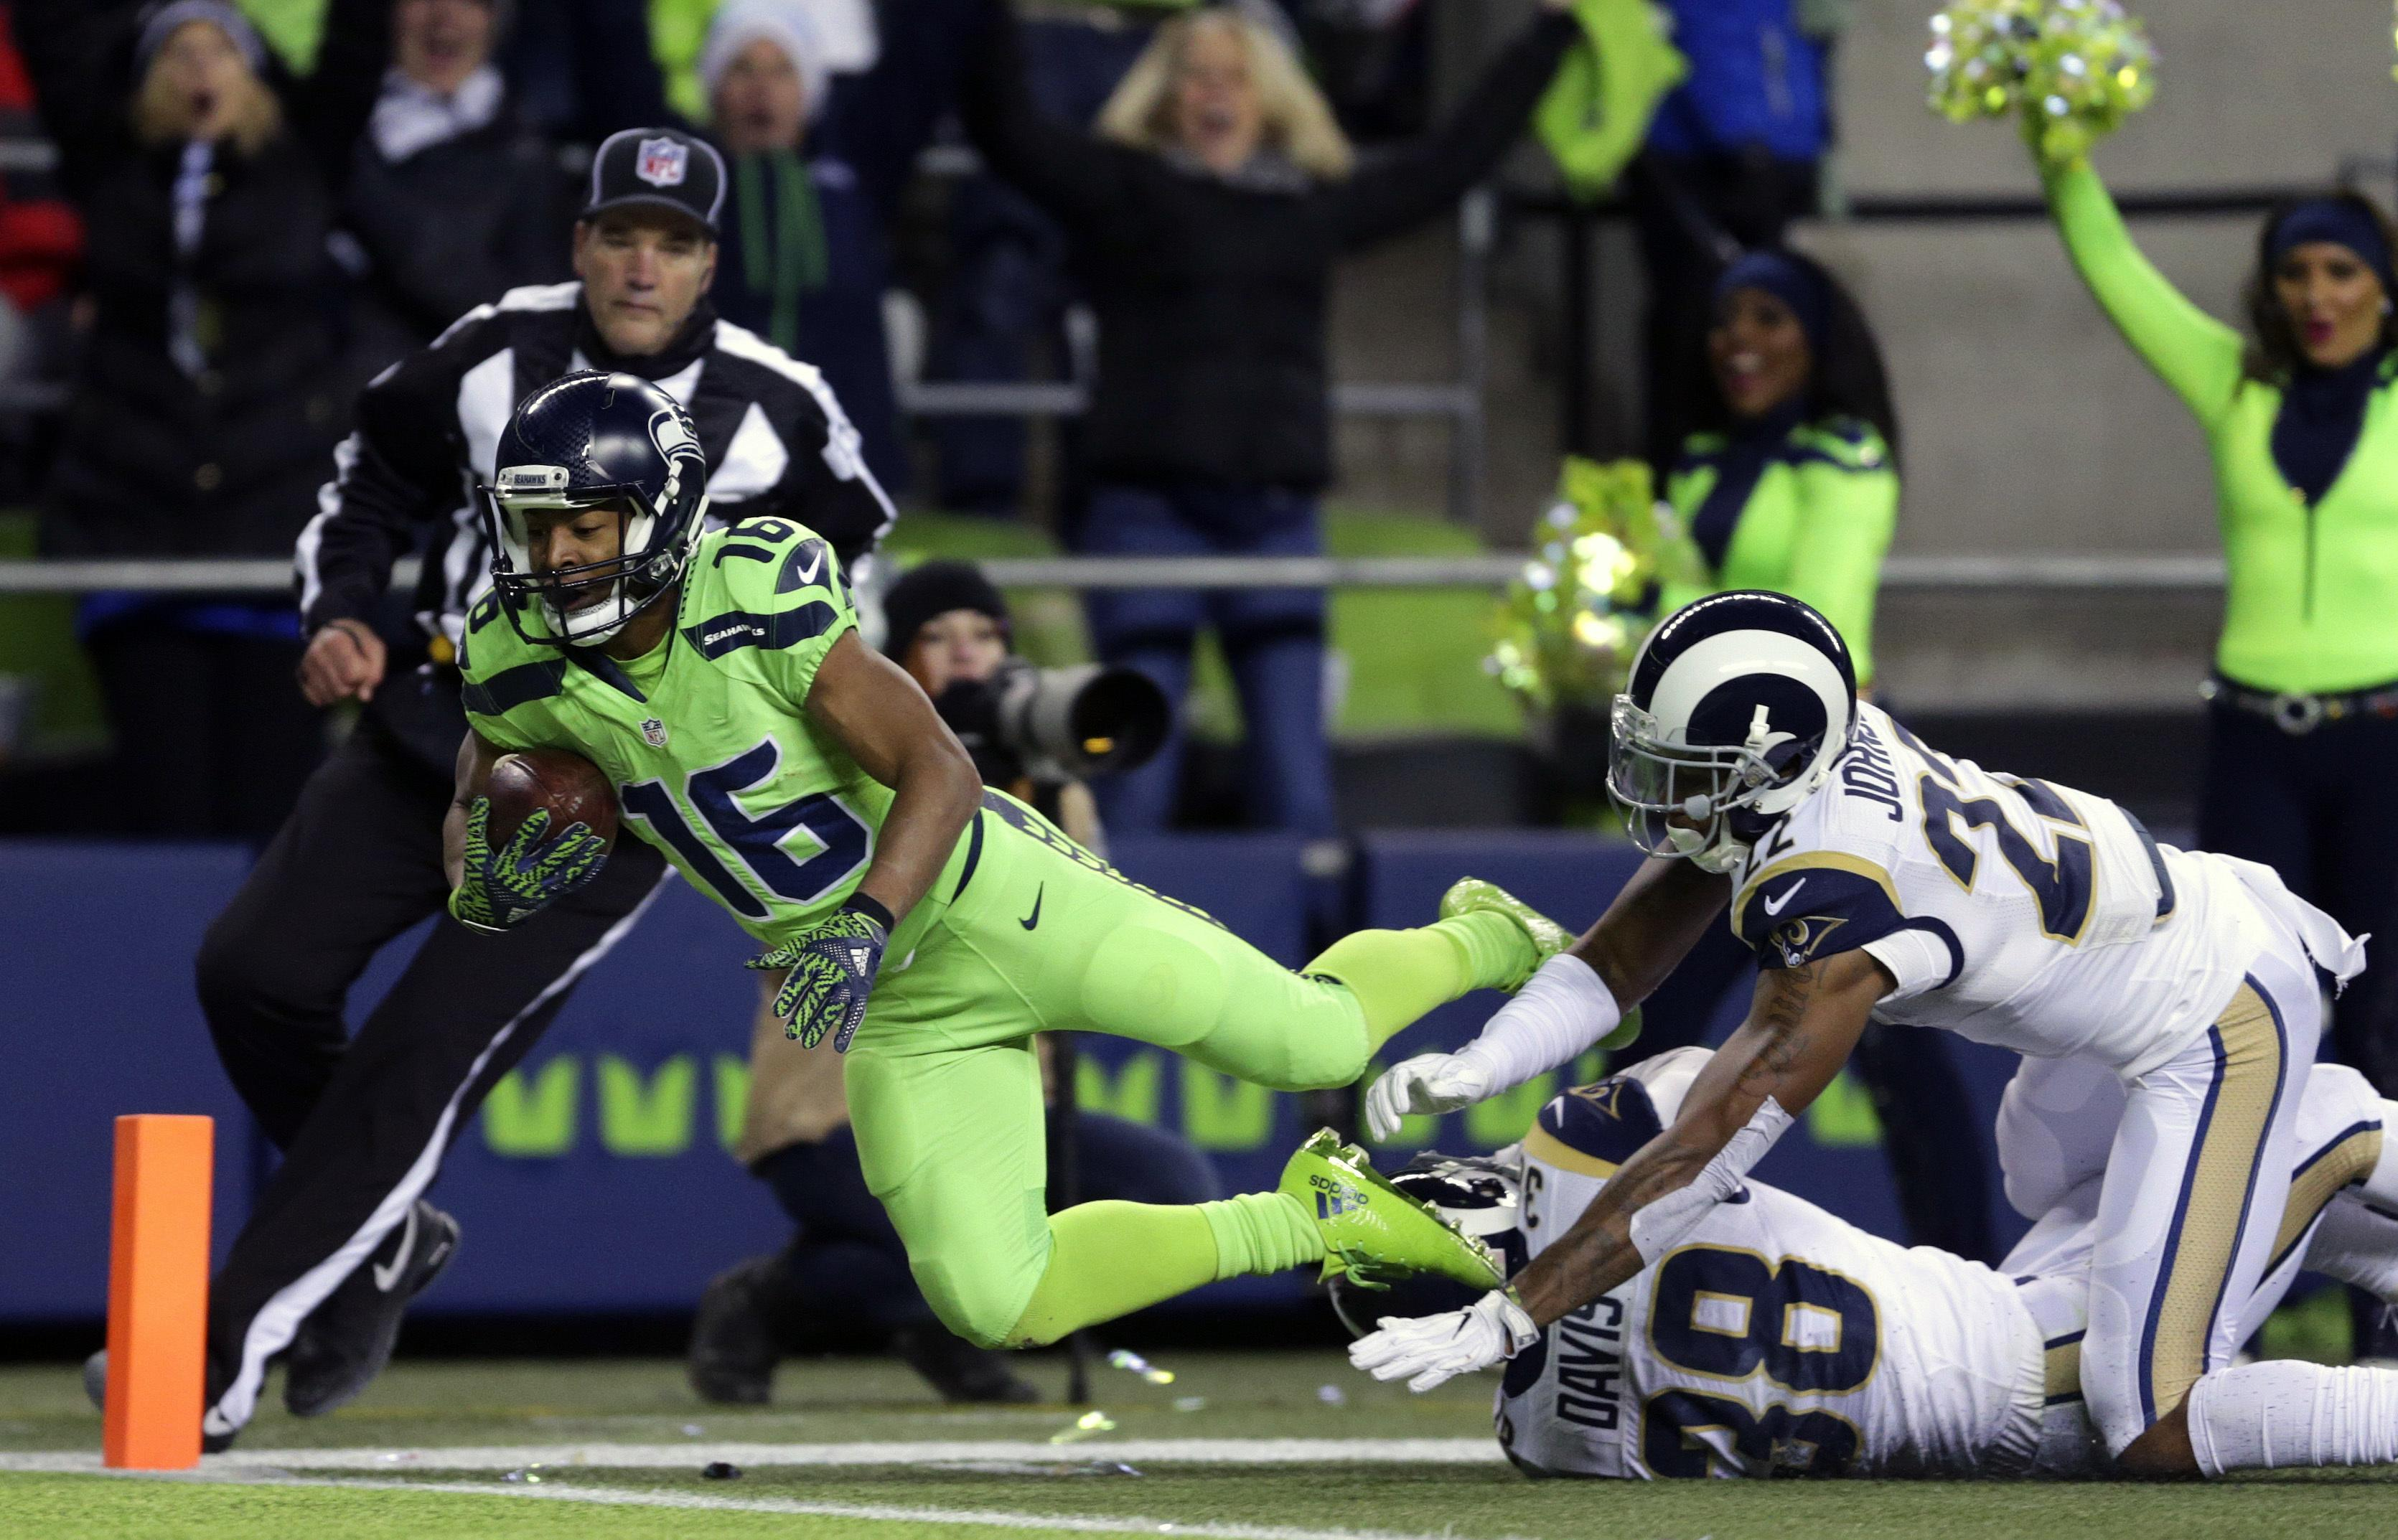 492d6e9ca Tyler Lockett of the Seahawks found the end zone on this play against the  Rams but